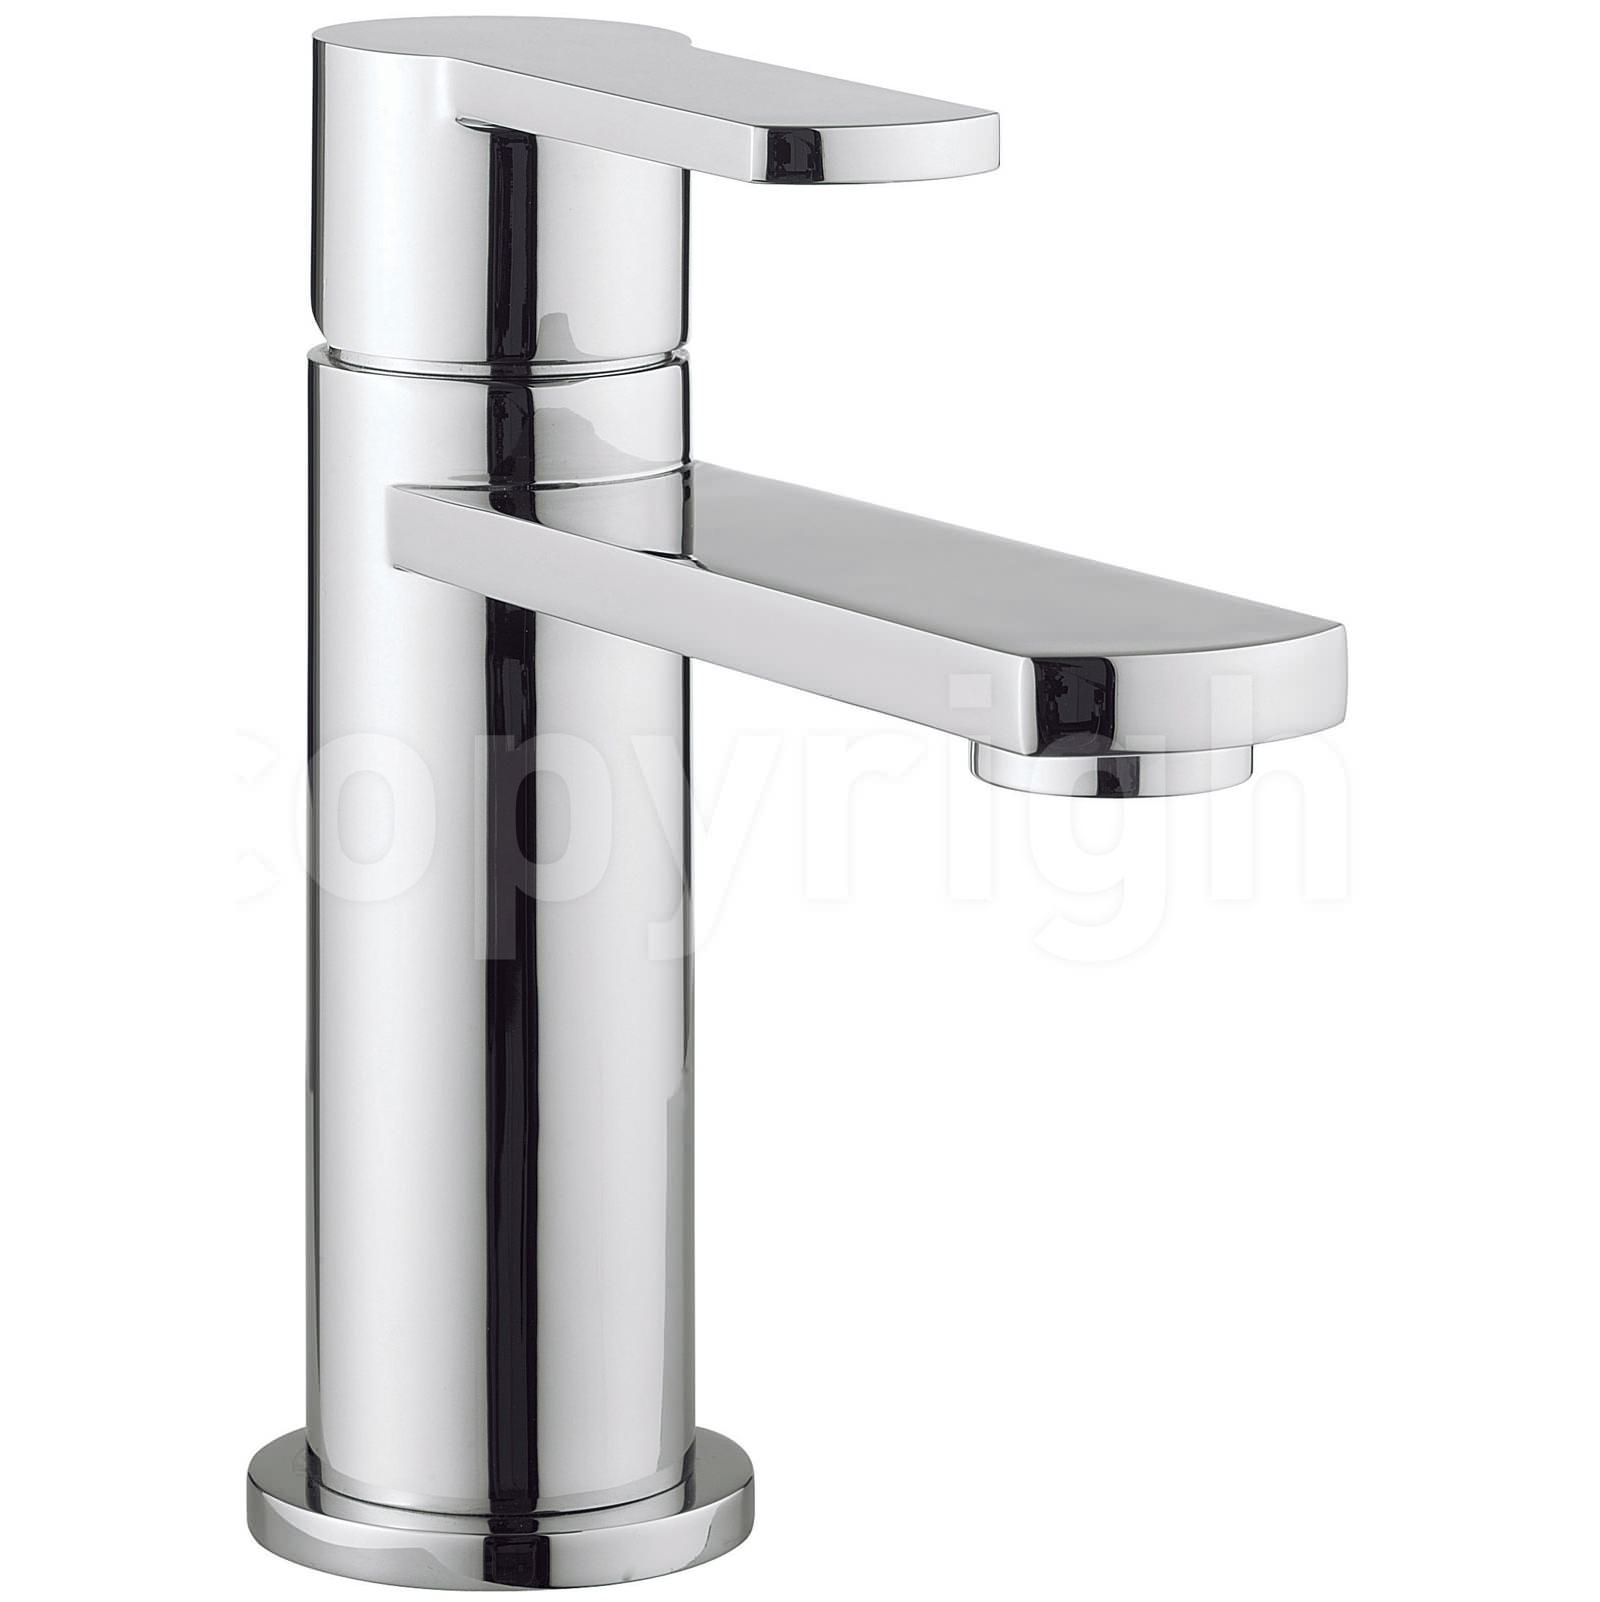 crosswater wisp monobloc basin mixer tap chrome. Black Bedroom Furniture Sets. Home Design Ideas